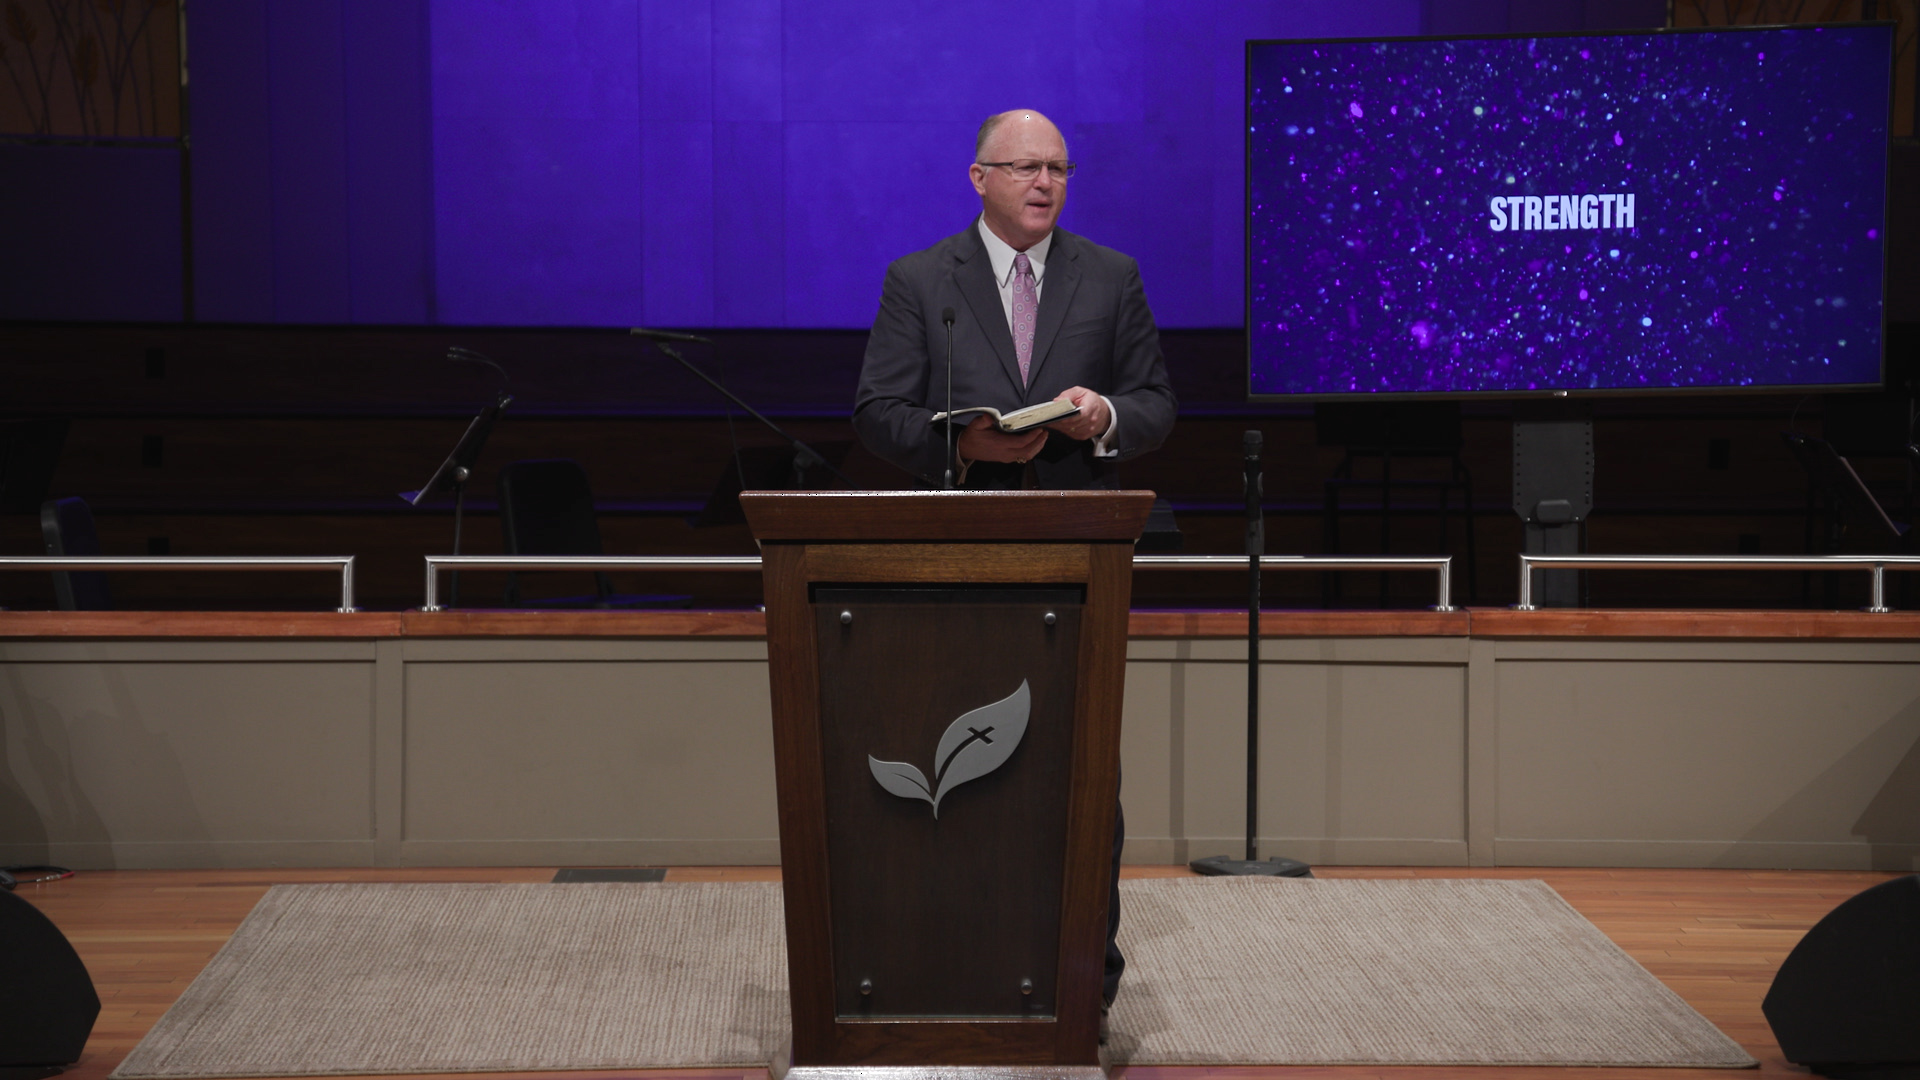 Pastor Paul Chappell: Growing in the New Year